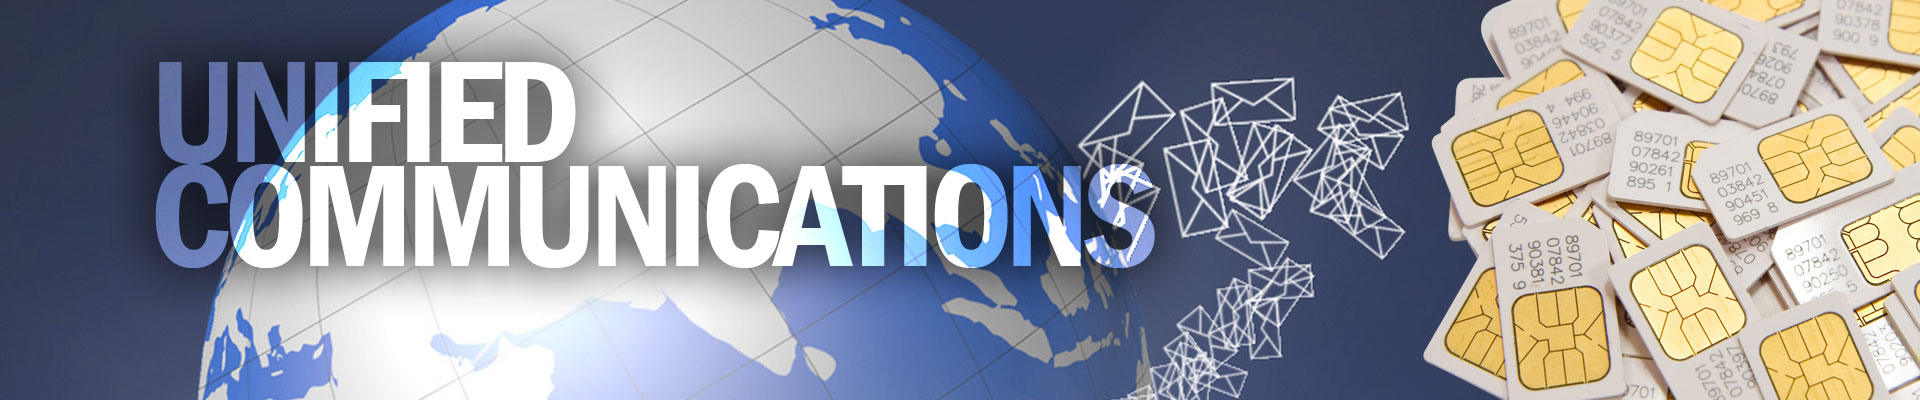 Unified Communications banner image